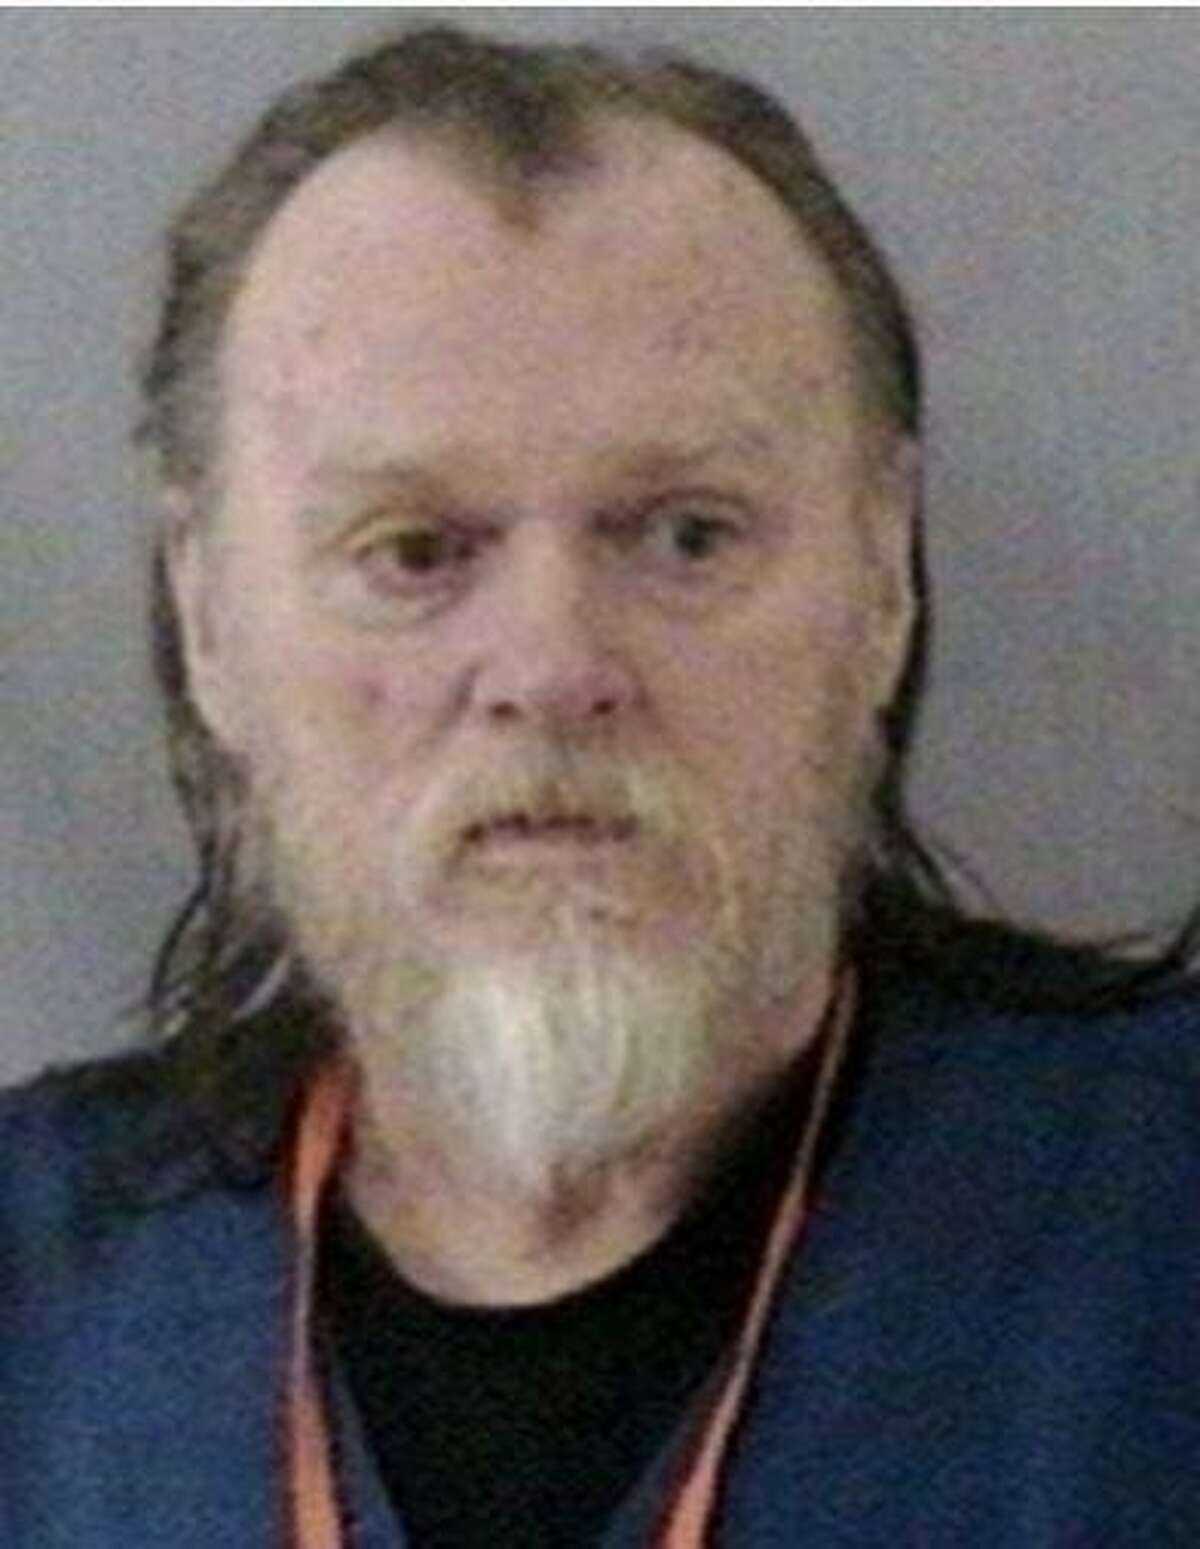 Rodney Halbower, seen in a 2013 photo, has been linked to a string of killings in the Bay Area in 1976. Halbower, 66, is currently an inmate at the Oregon State Penitentiary.